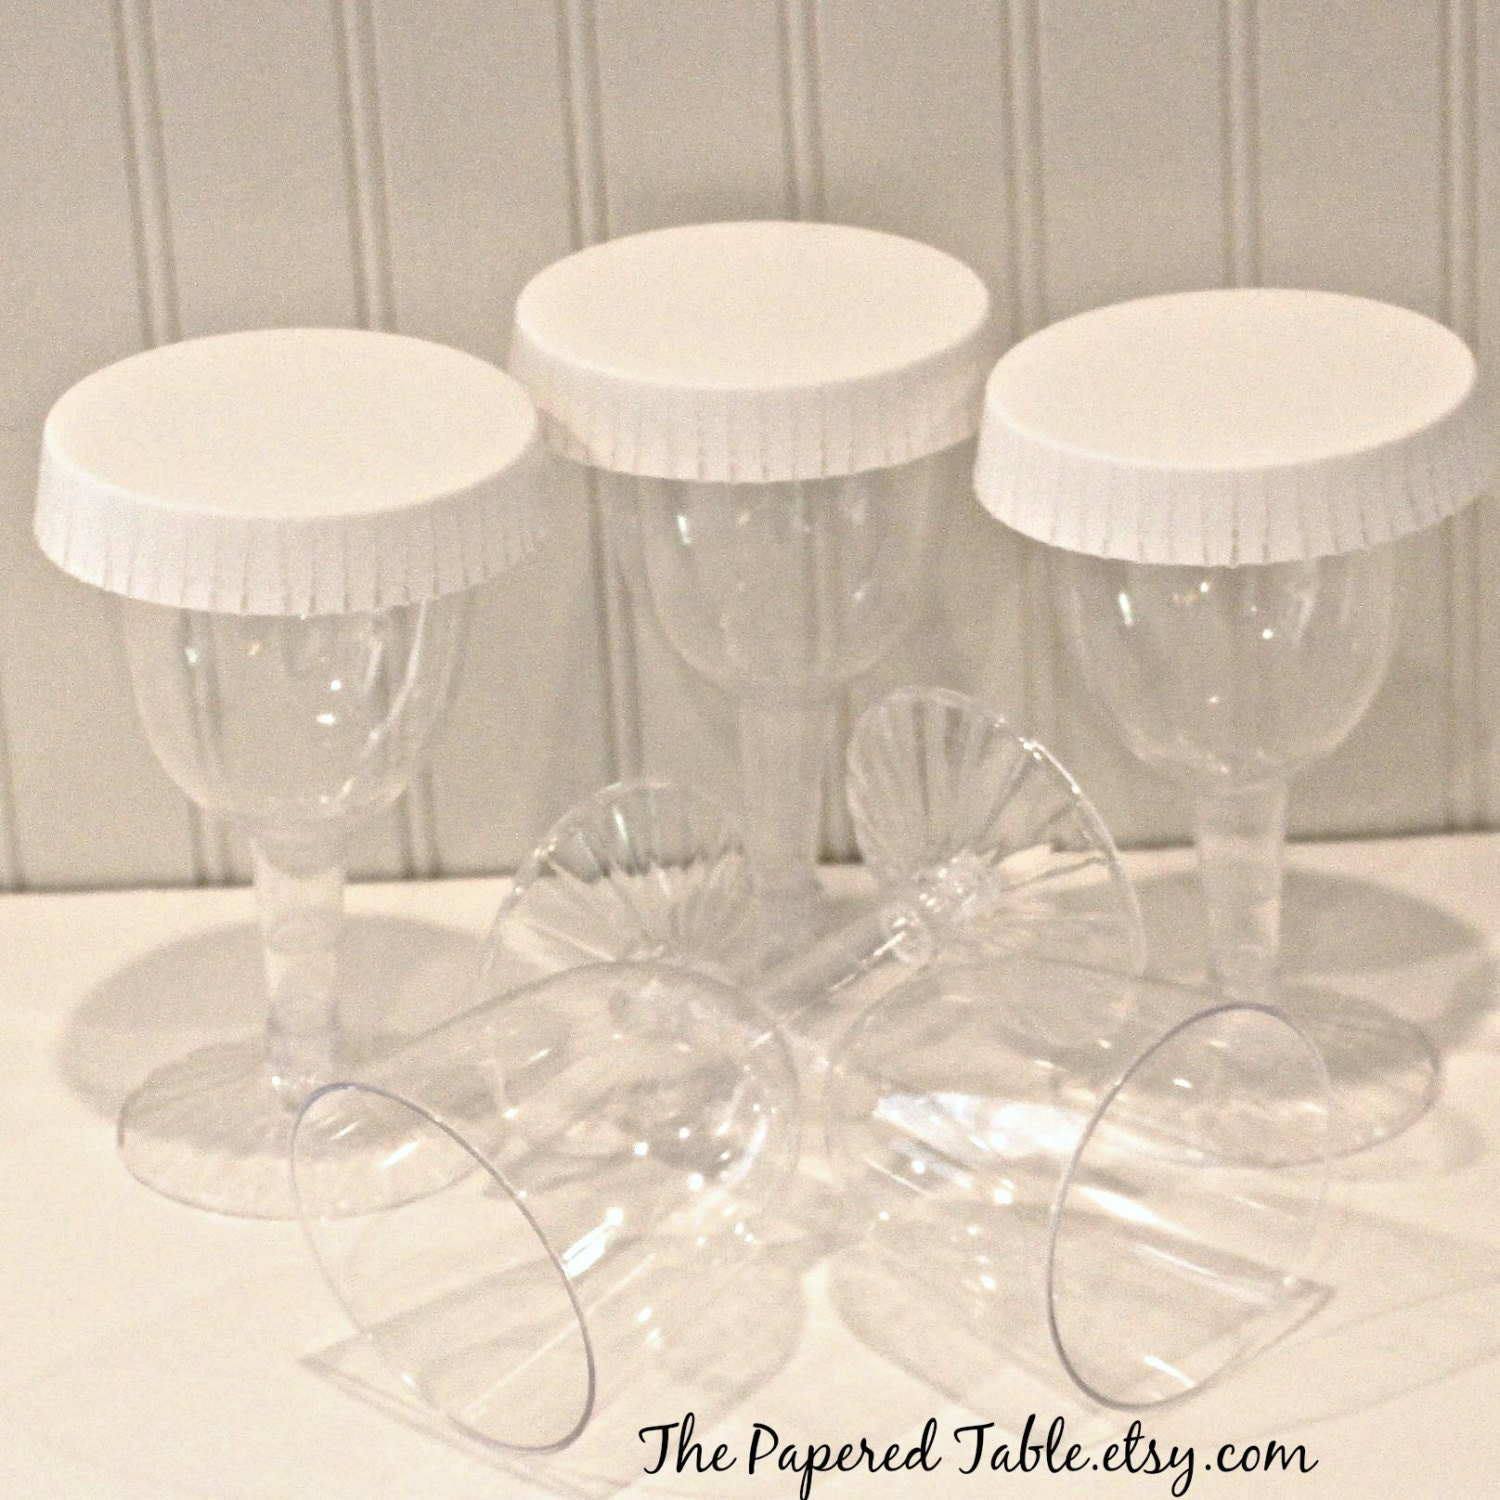 500 Cup Glass Covers Wholesale Bulk Wine Glass Covers